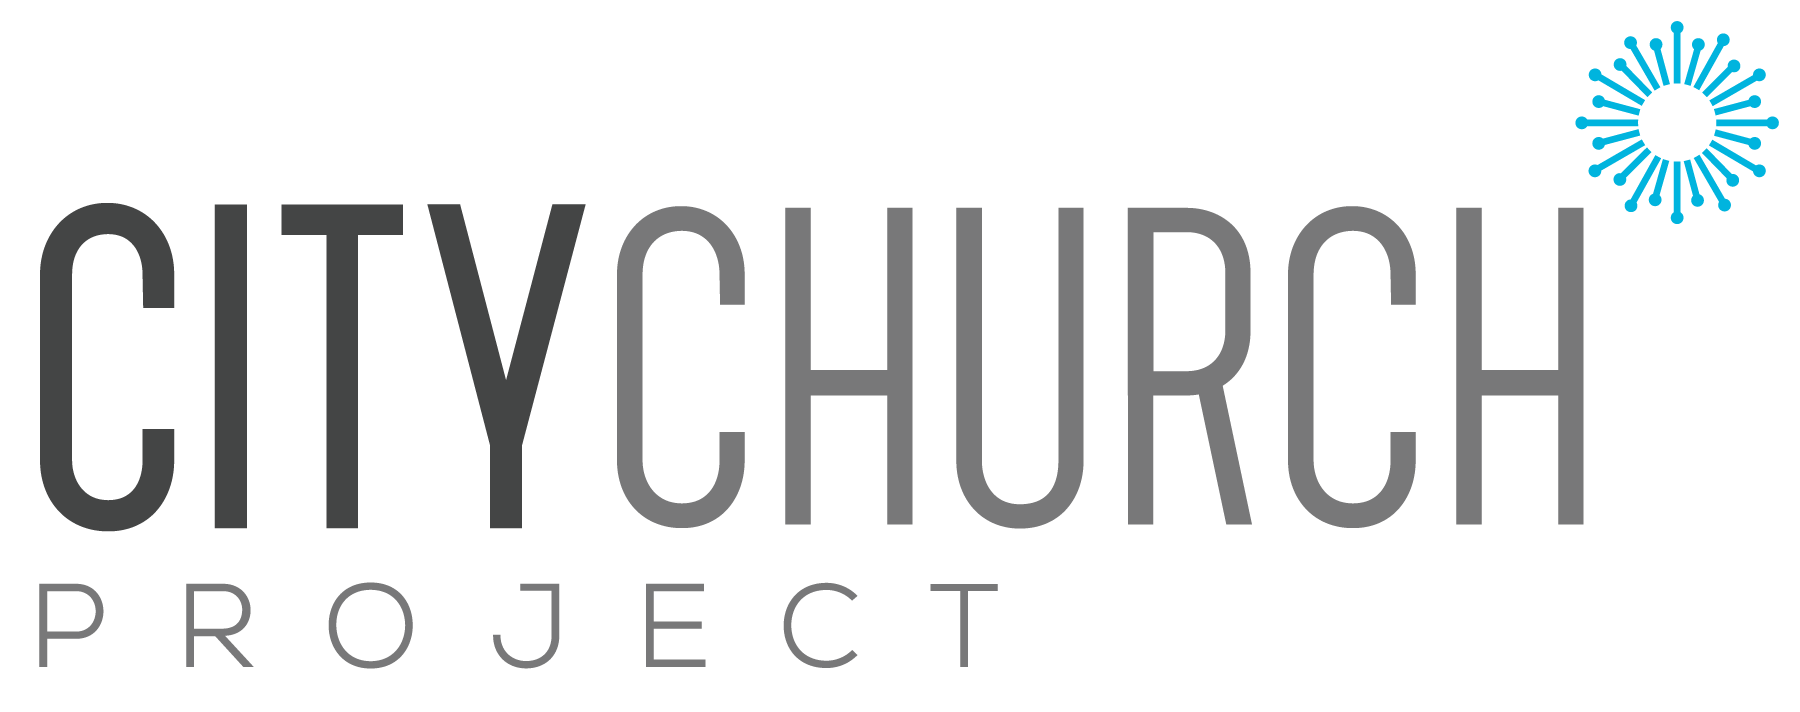 CityChurch-Project-Logo-(Color).png